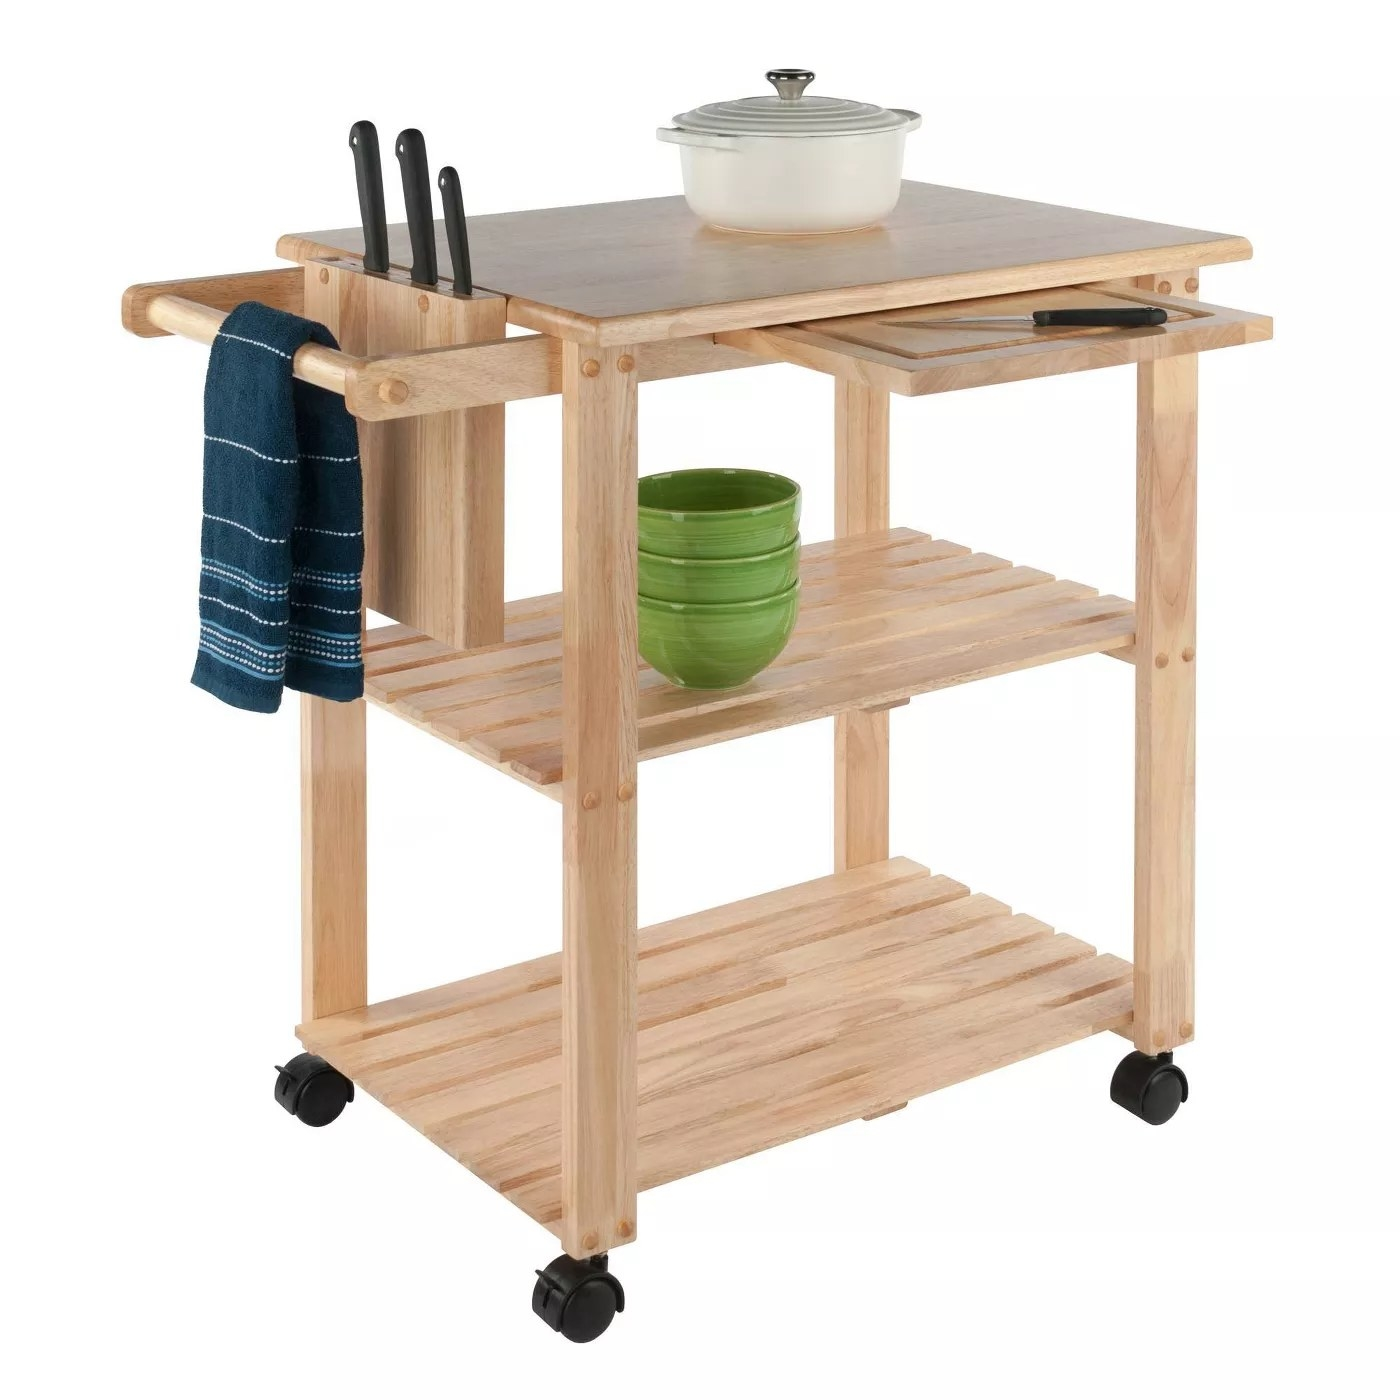 The natural wood kitchen cart with two open shelves and appliances and dishes on it